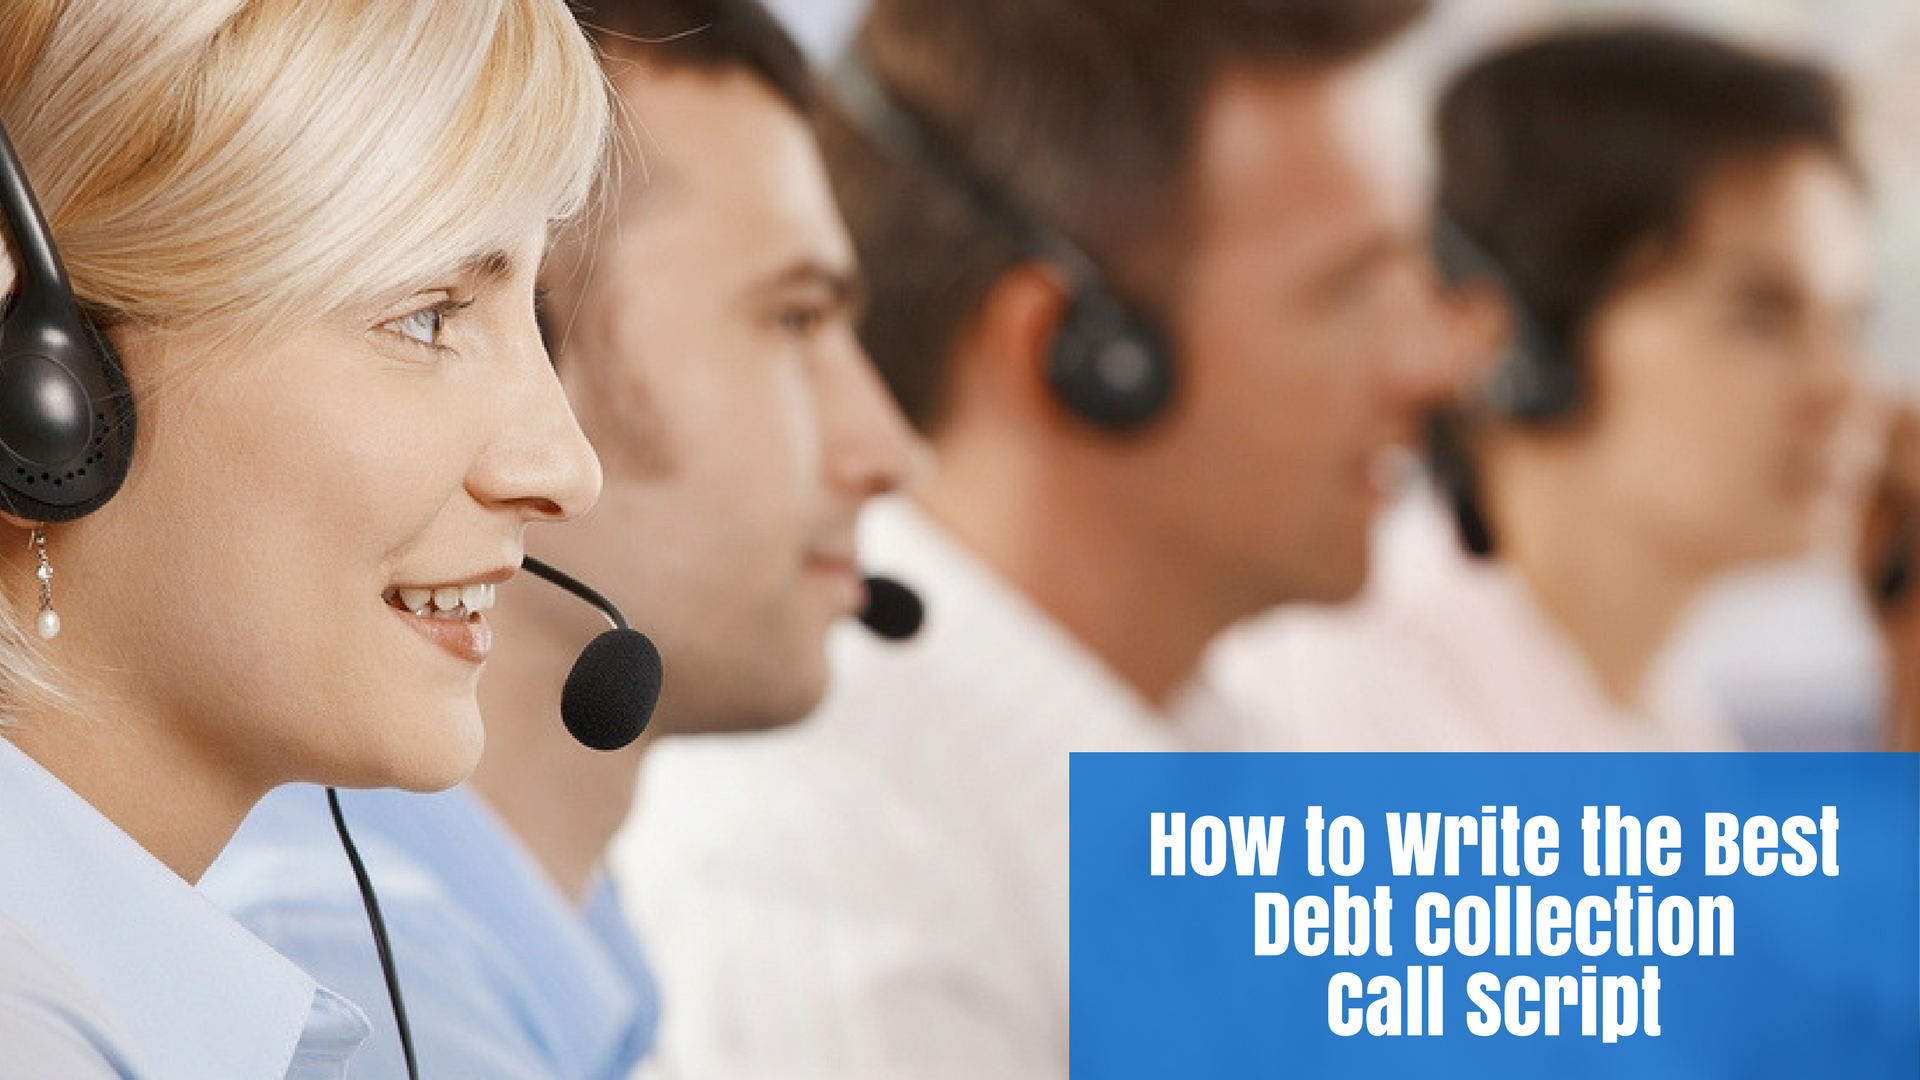 How to Write the Best Debt Collection Call Script - Debt